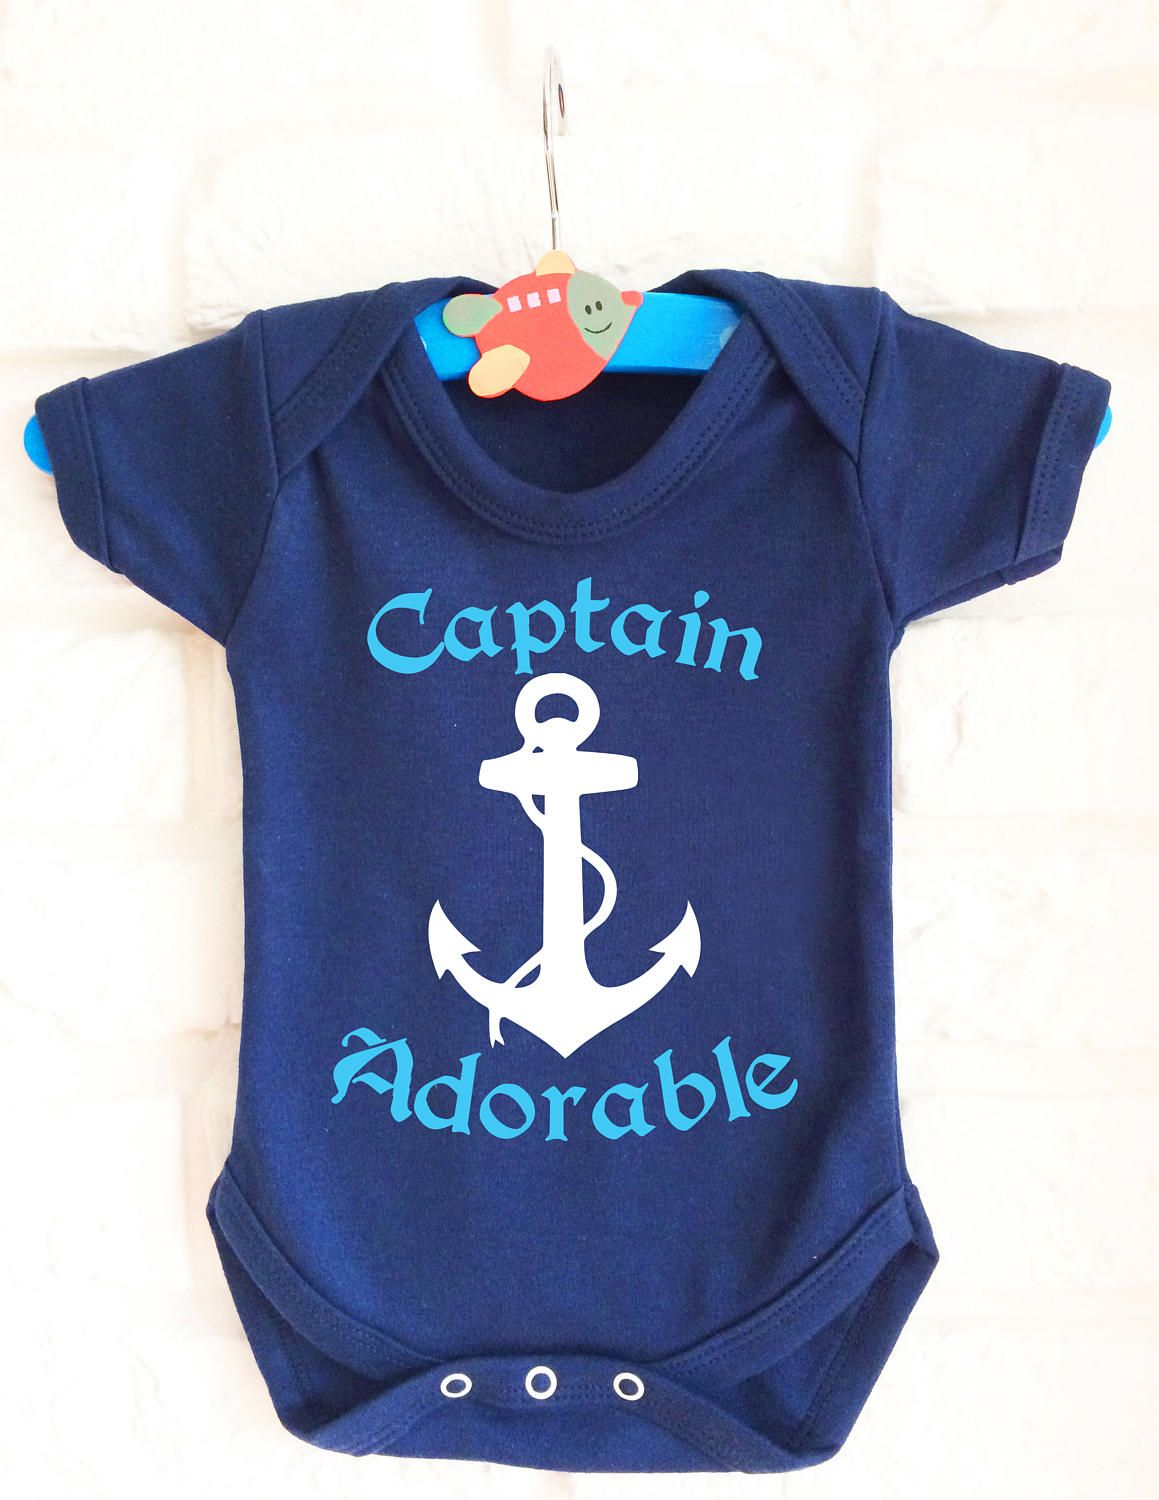 c5cee3bf3 Captain Adorable baby s blue bodysuit baby grow vest